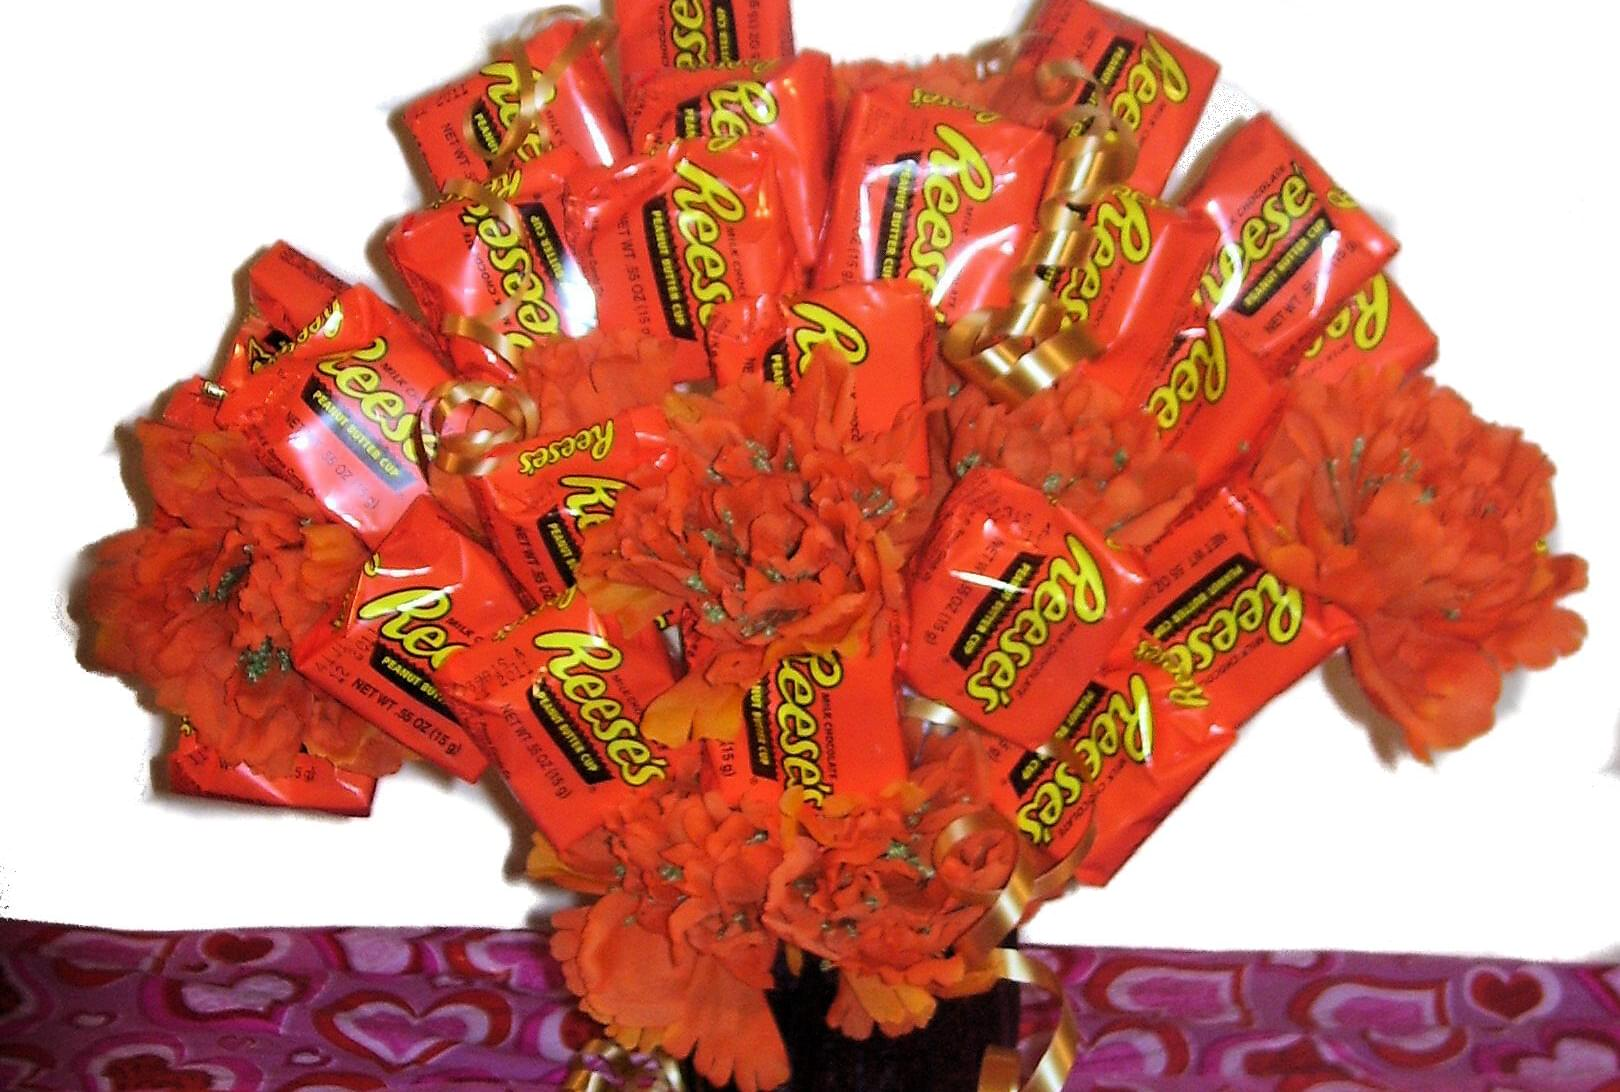 Walmart is selling reese's bouquets for valentine's day